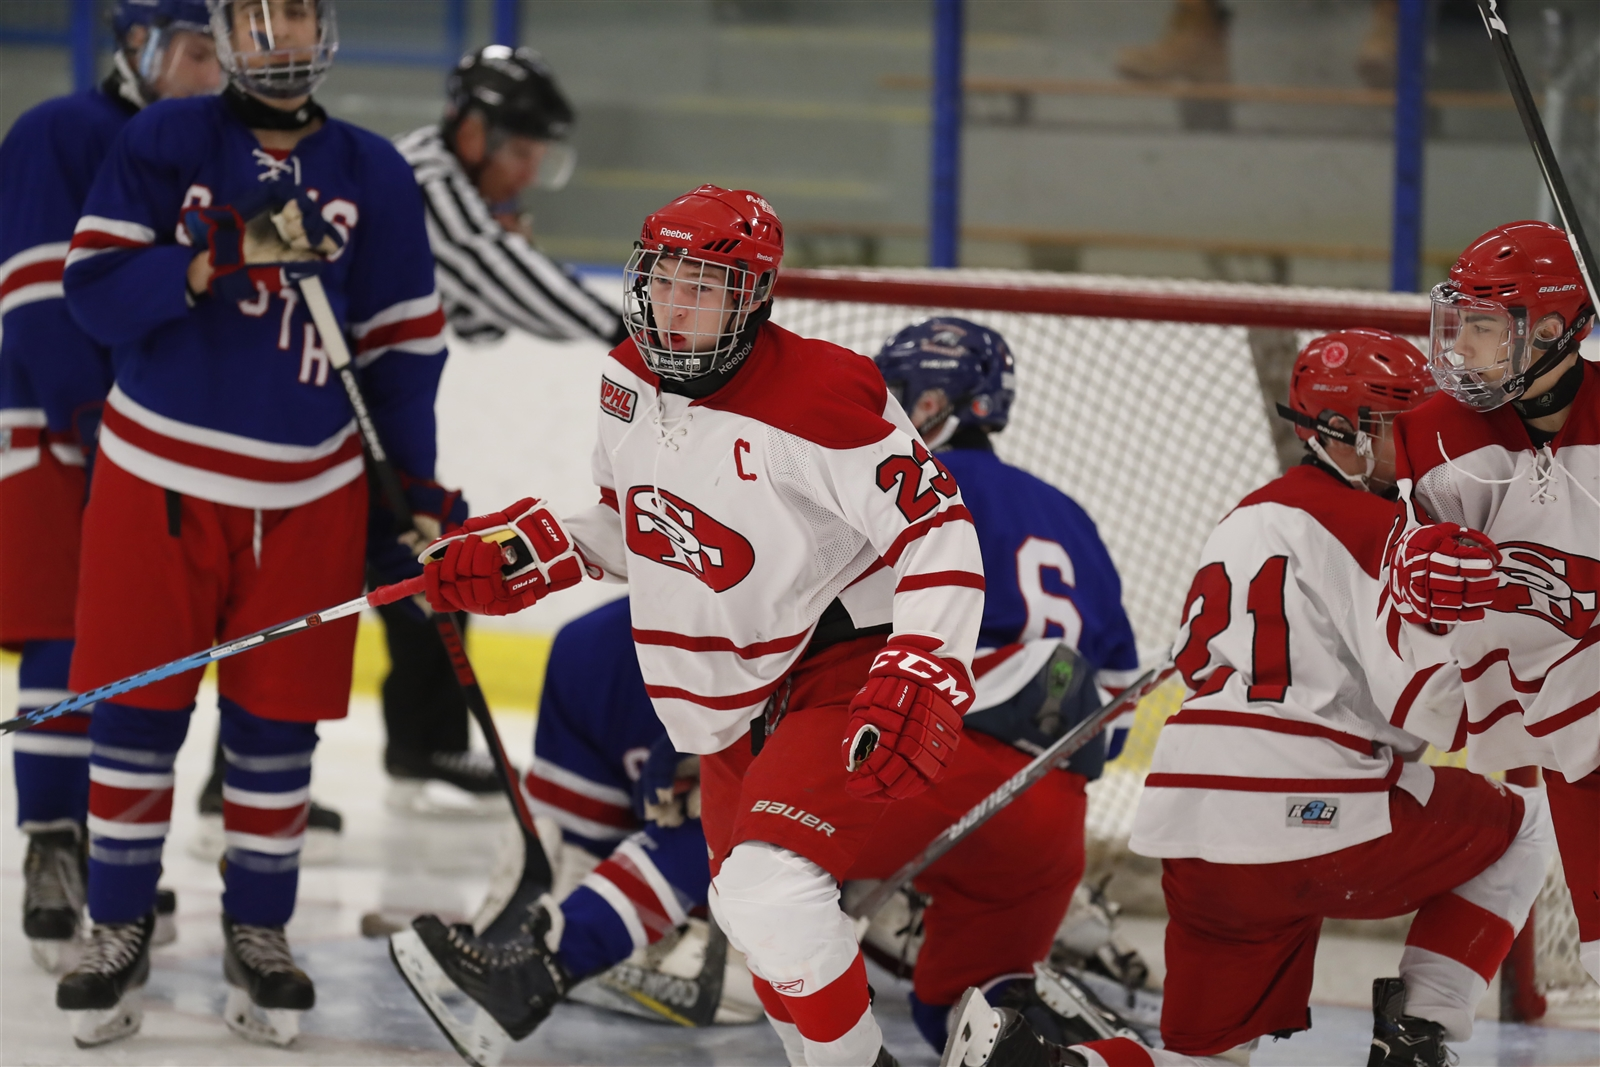 St. Francis' Domonic Galanti celebrates his goal against Williamsville South during first period action.